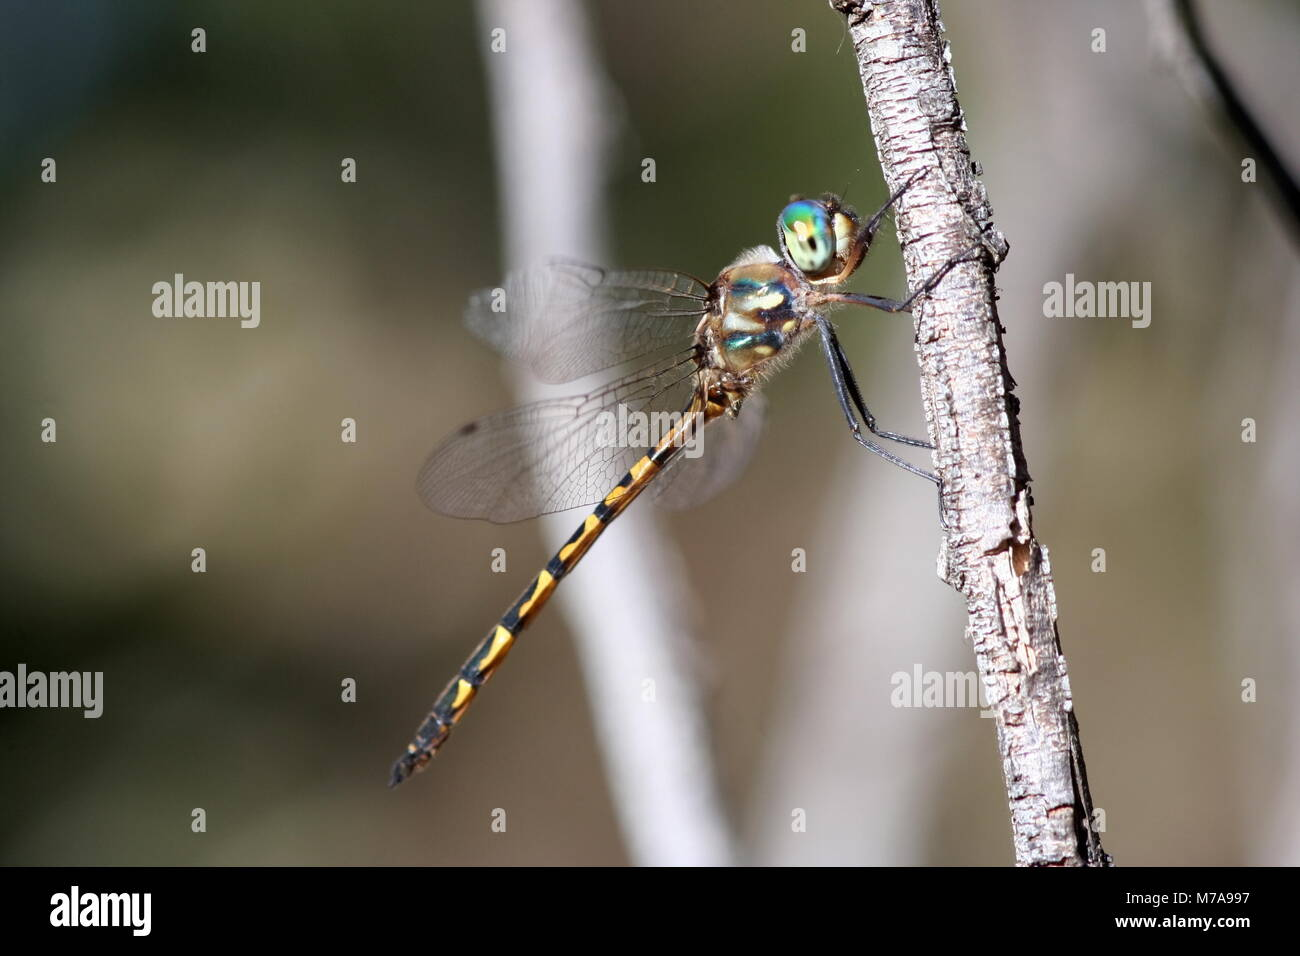 dragonfly on deviantart wm australian emerald by art